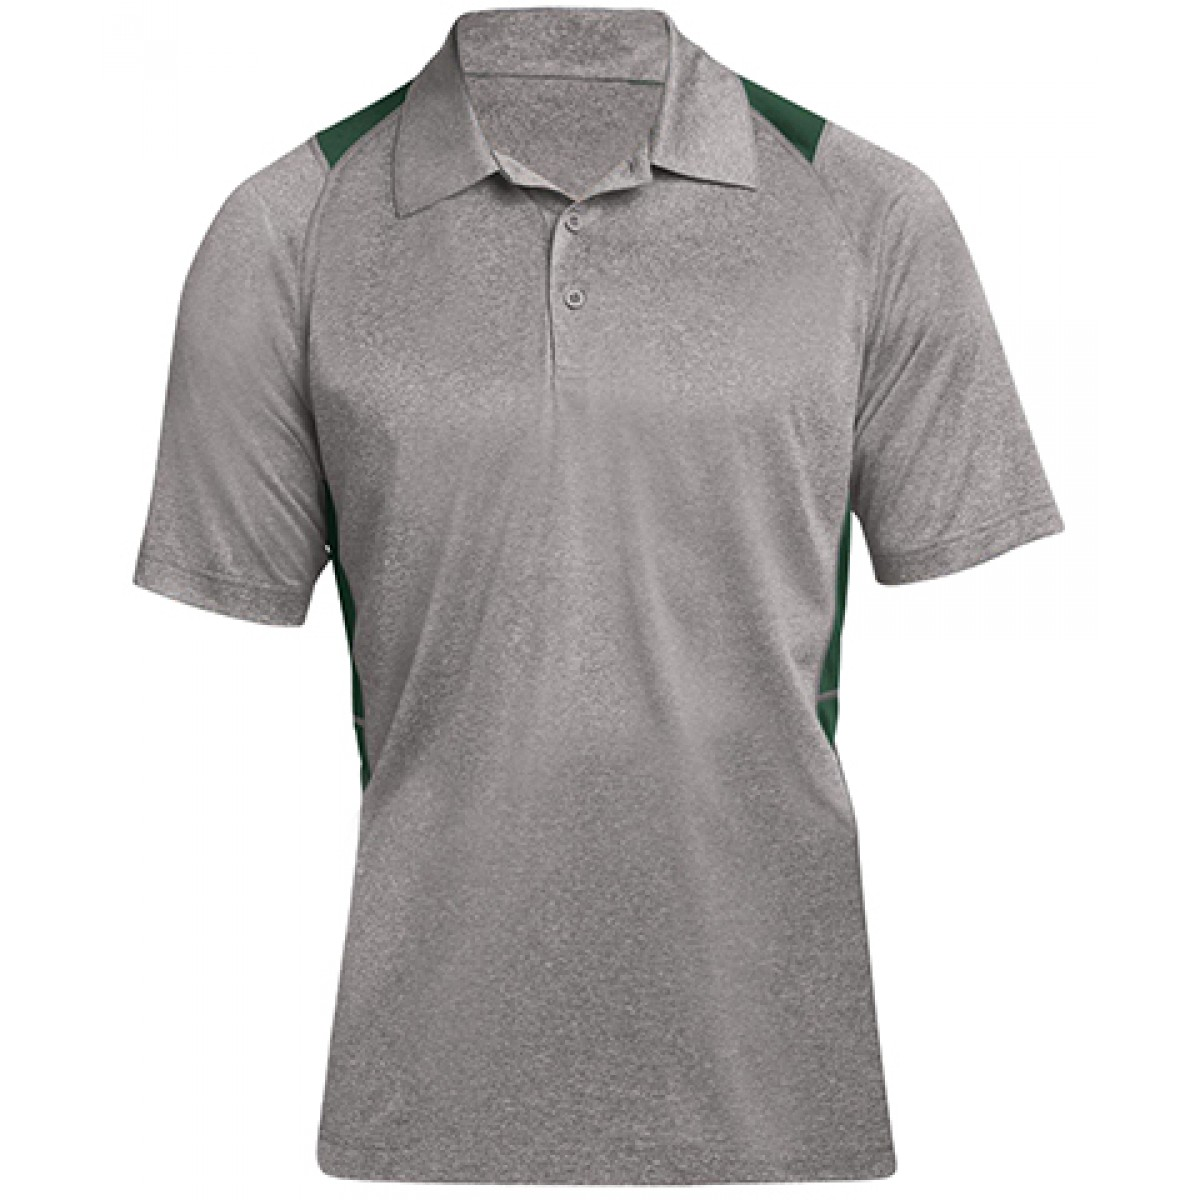 Heather Colorblock Contender Polo-Gray/Green-2XL